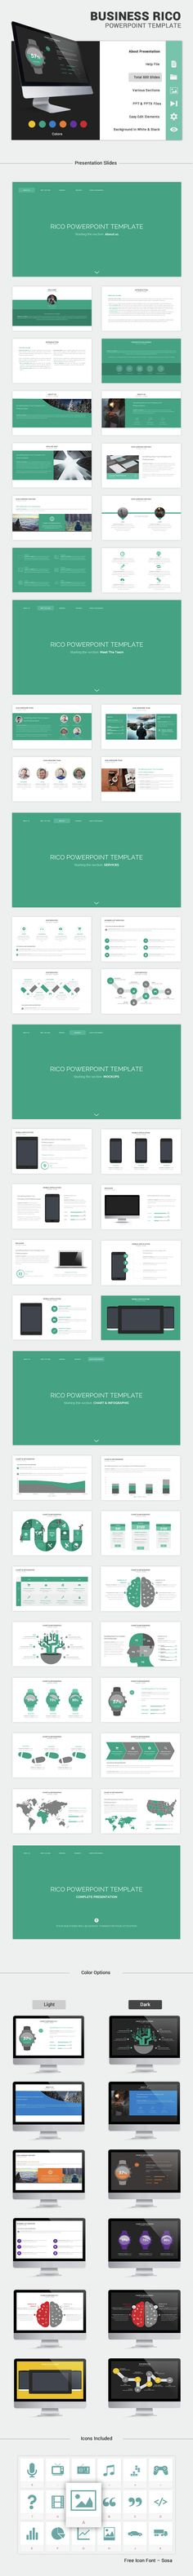 Rico Business PowerPoint Template #slides Download here: http://graphicriver.net/item/rico-business-theme/14673877?ref=ksioks